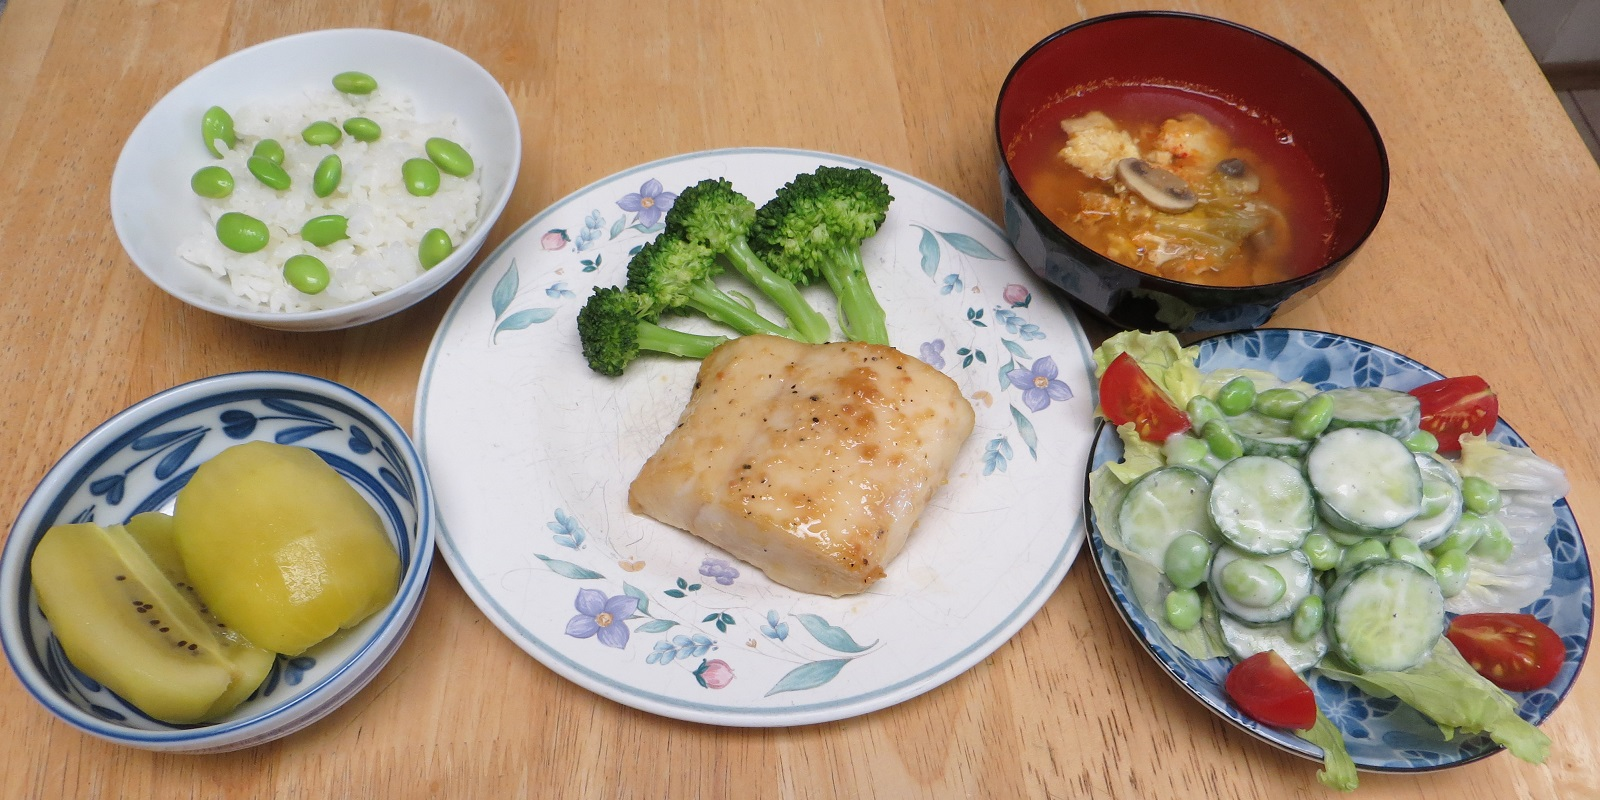 500-calories-set-meal-miso-grazed-cod